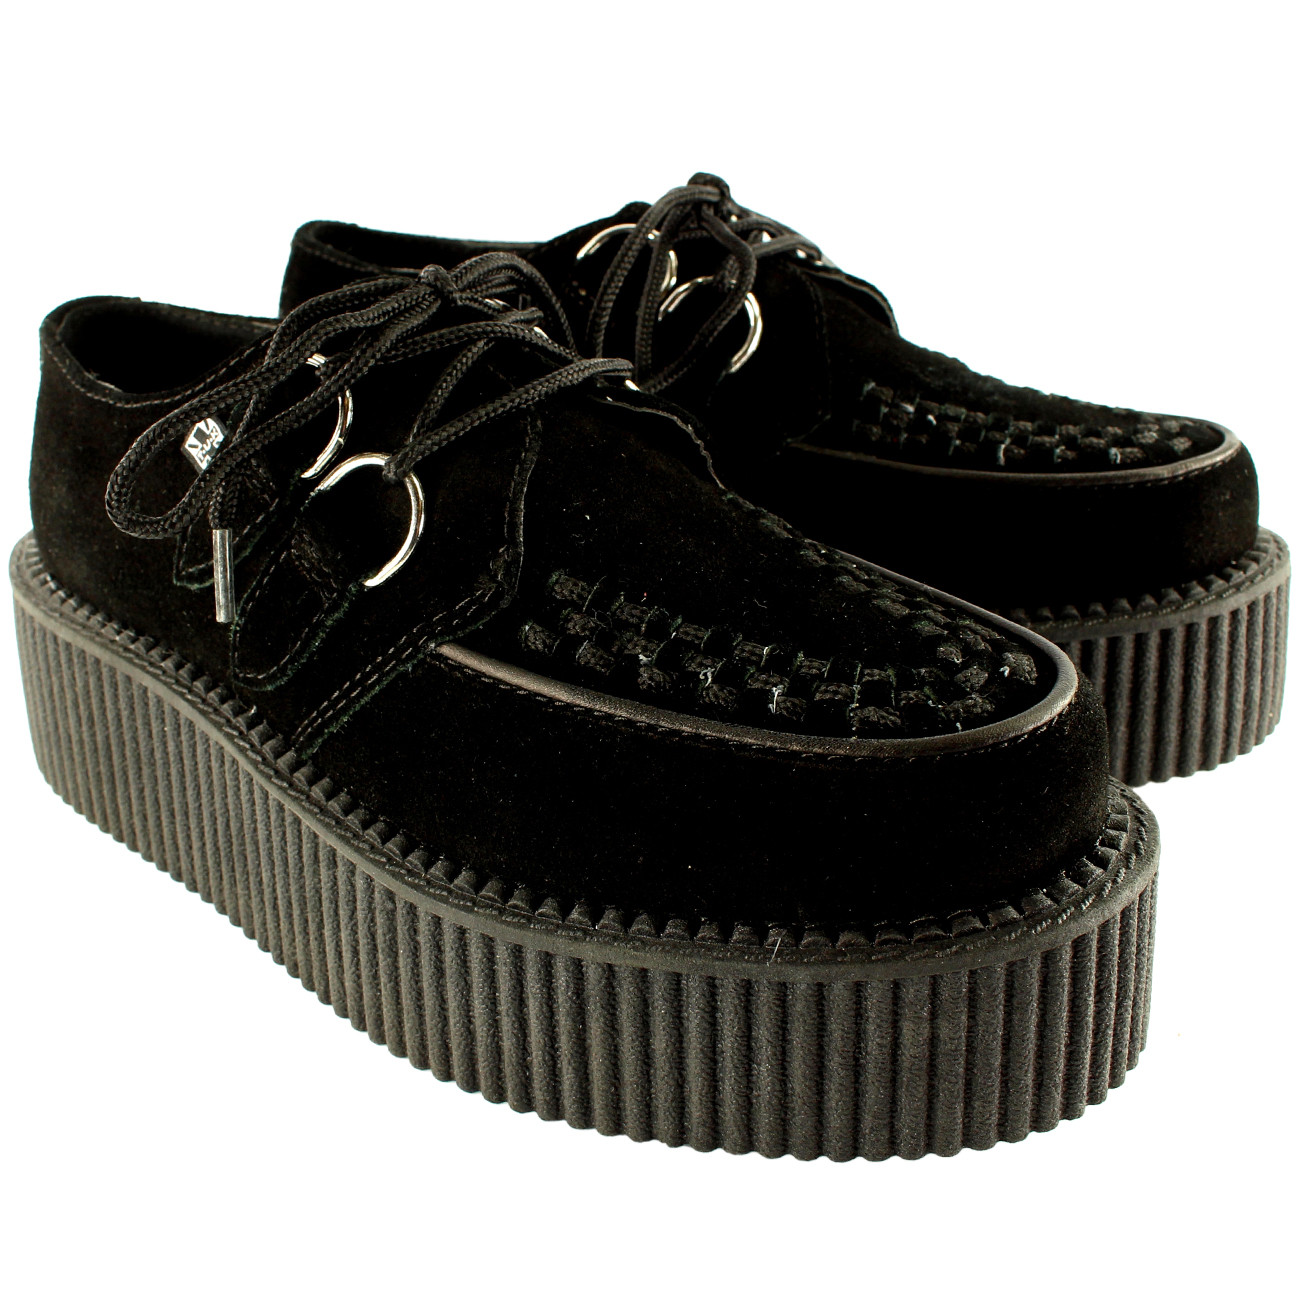 T.U.K Double Brother Creeper